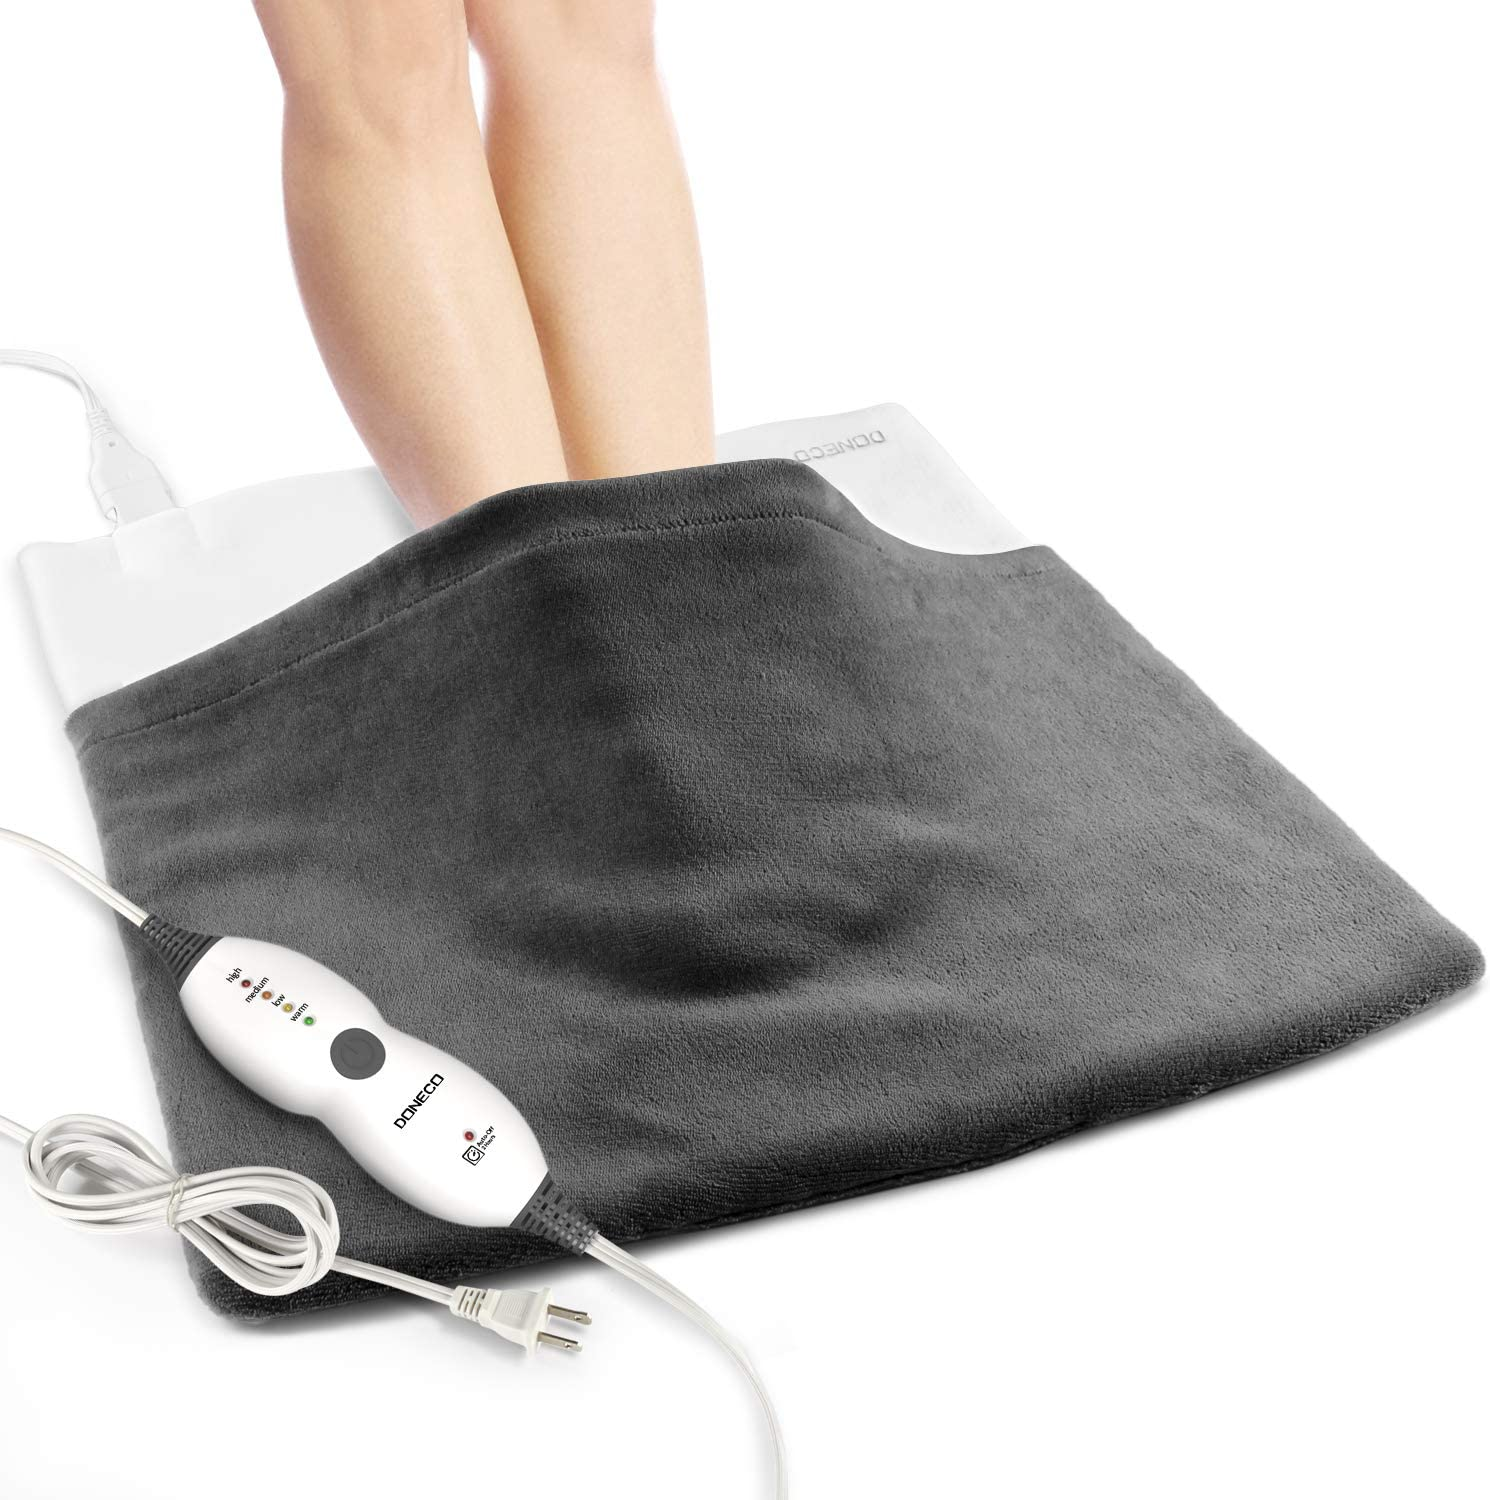 "DONECO King Size Heating Pad(22"" x 22""), Electric Foot Warmer with 4 Temperature Settings and Fast-Heating Technology - Extra Large for Feet, Back, Waist,Shoulders, Legs and Other Large Muscle Groups"